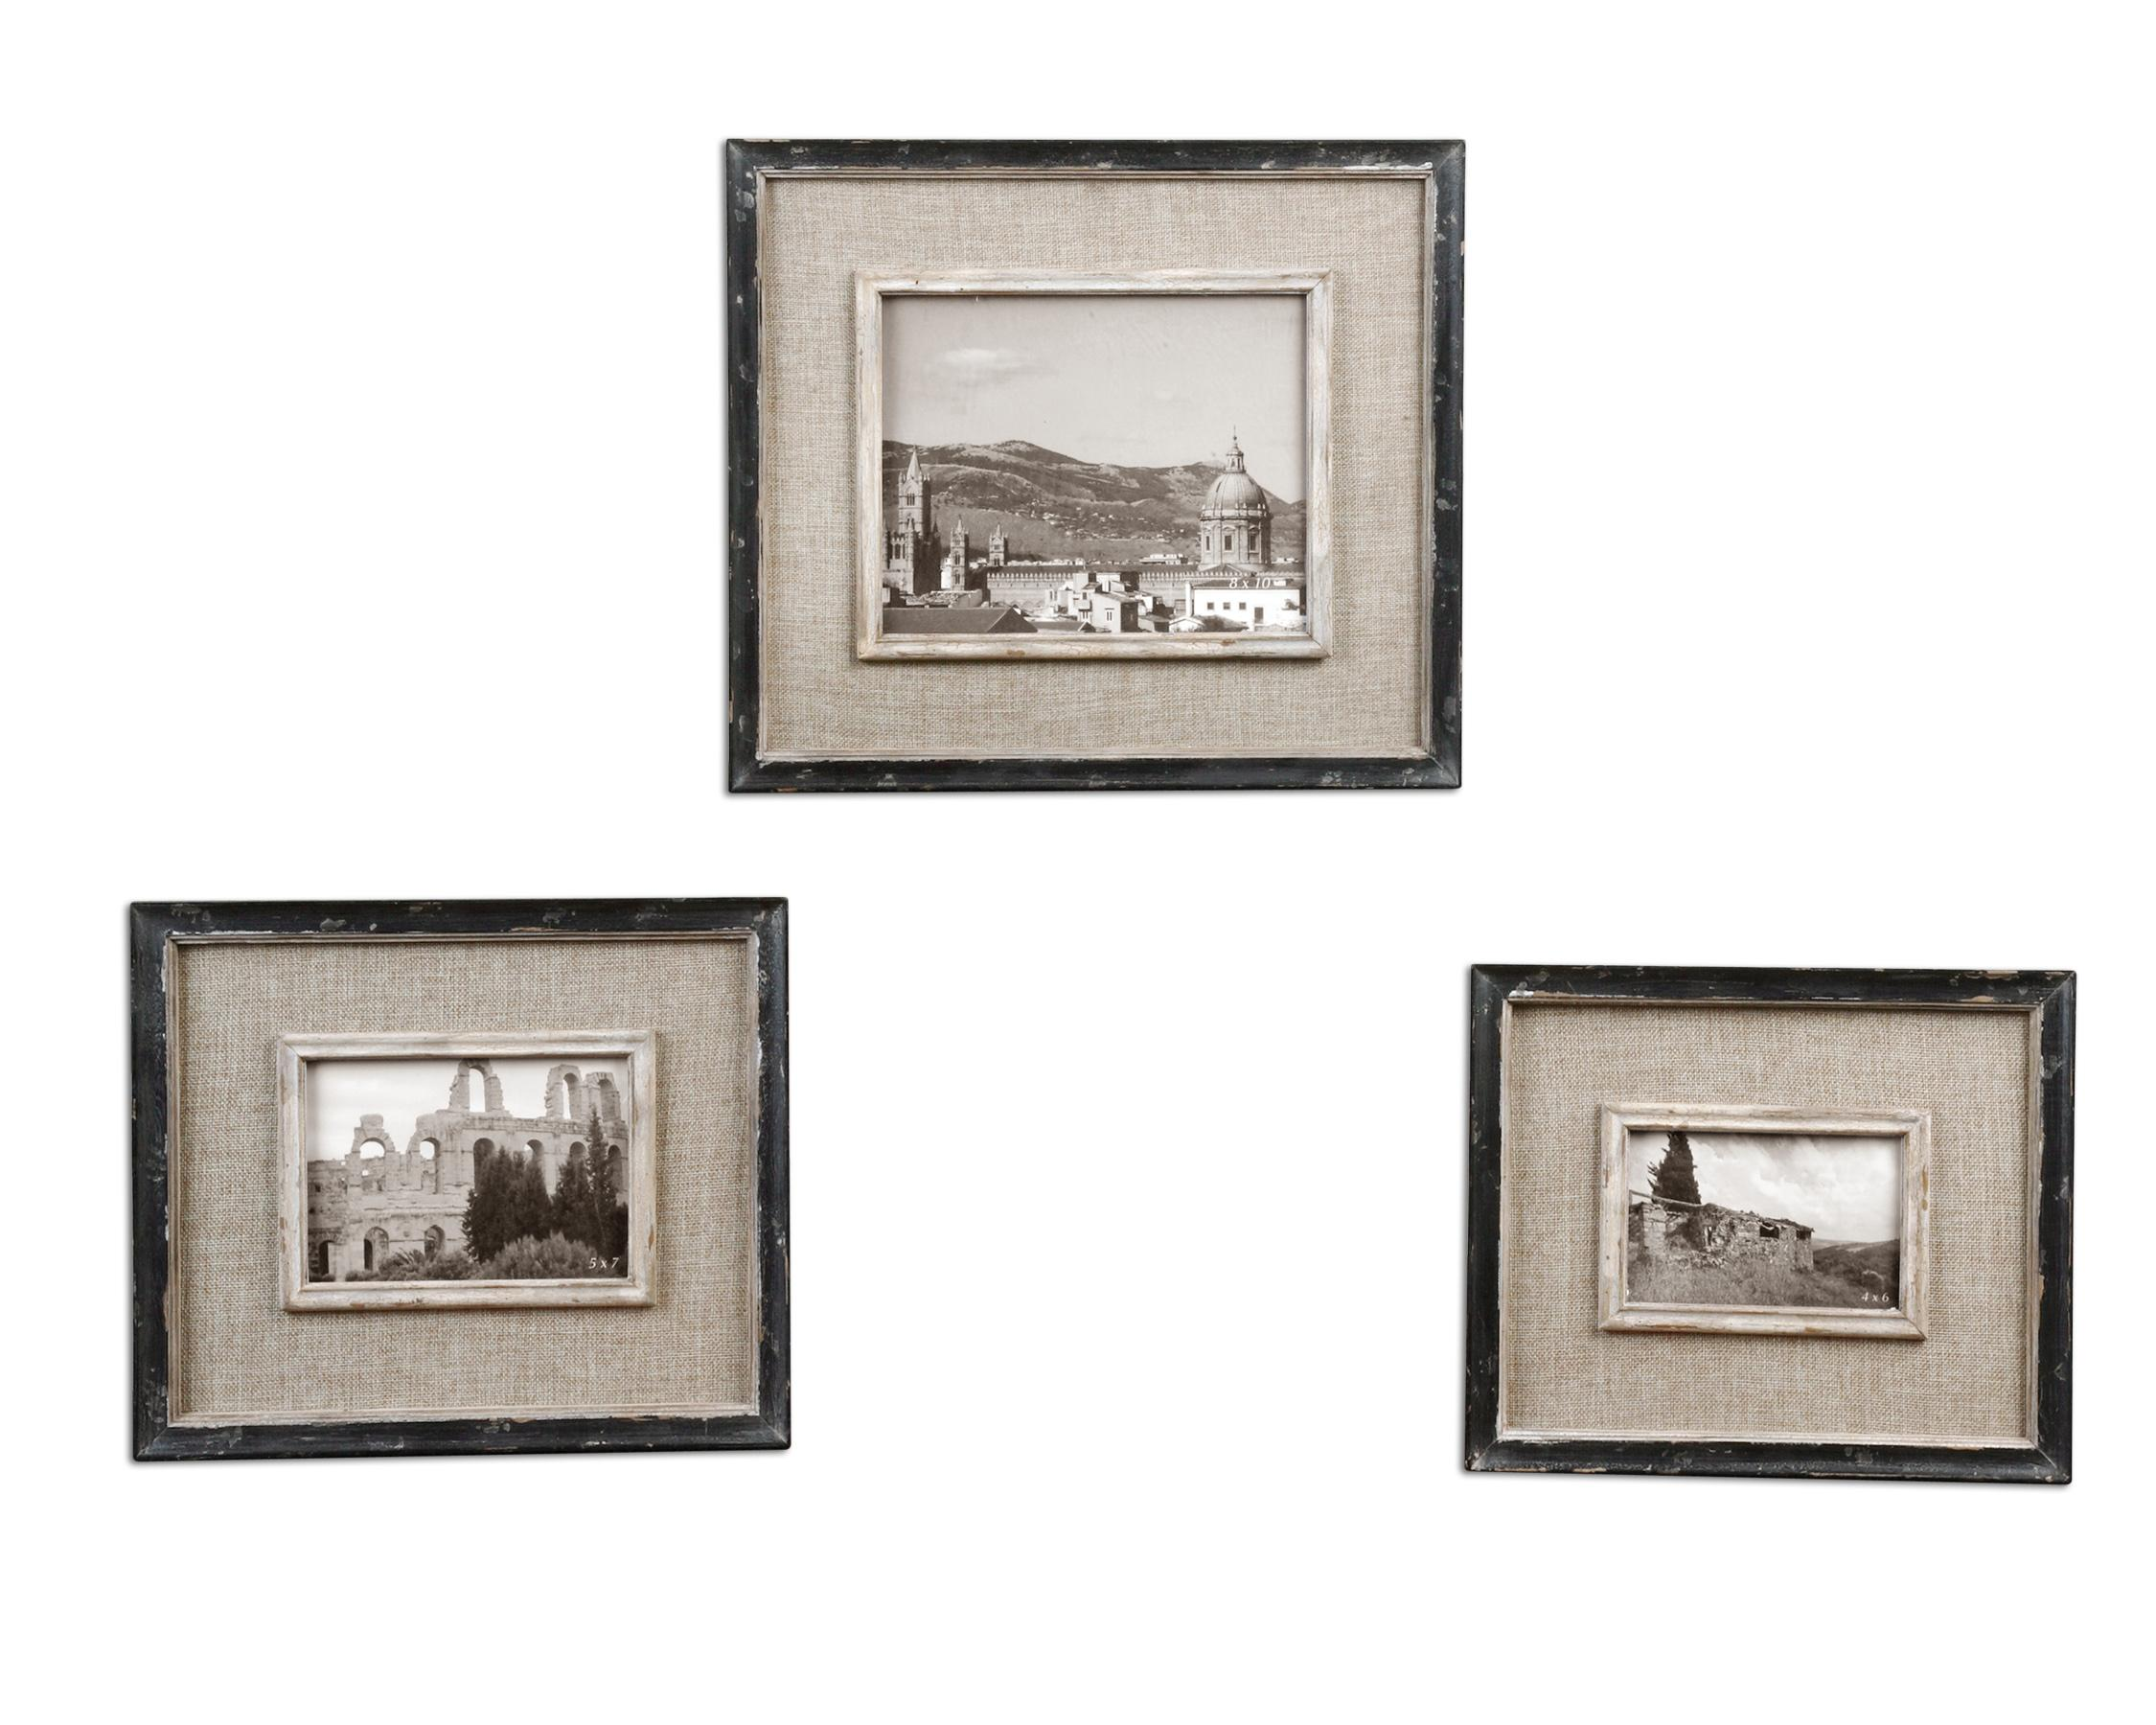 Uttermost Accessories Kalidas Photo Frames Set of 3 - Item Number: 18537